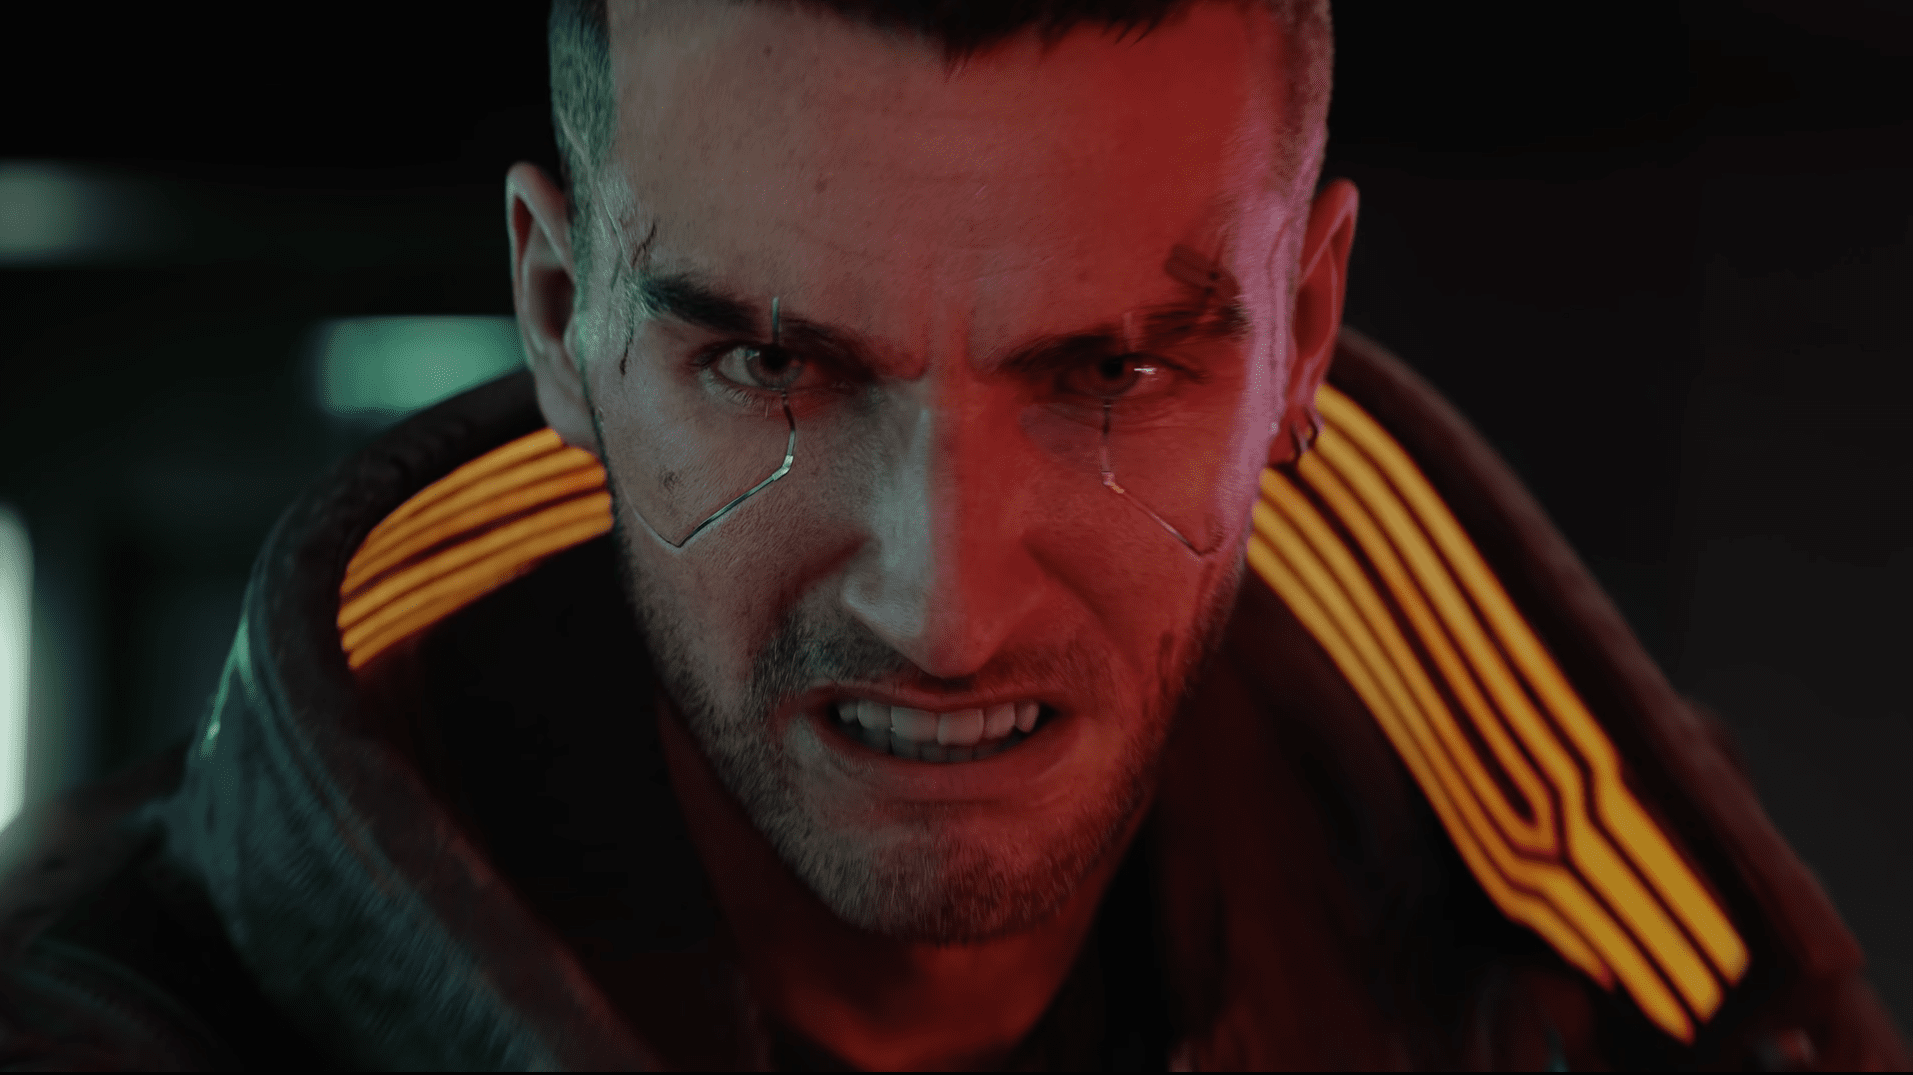 Cyberpunk 2077 Players Losing Progress With Corrupted Save Files